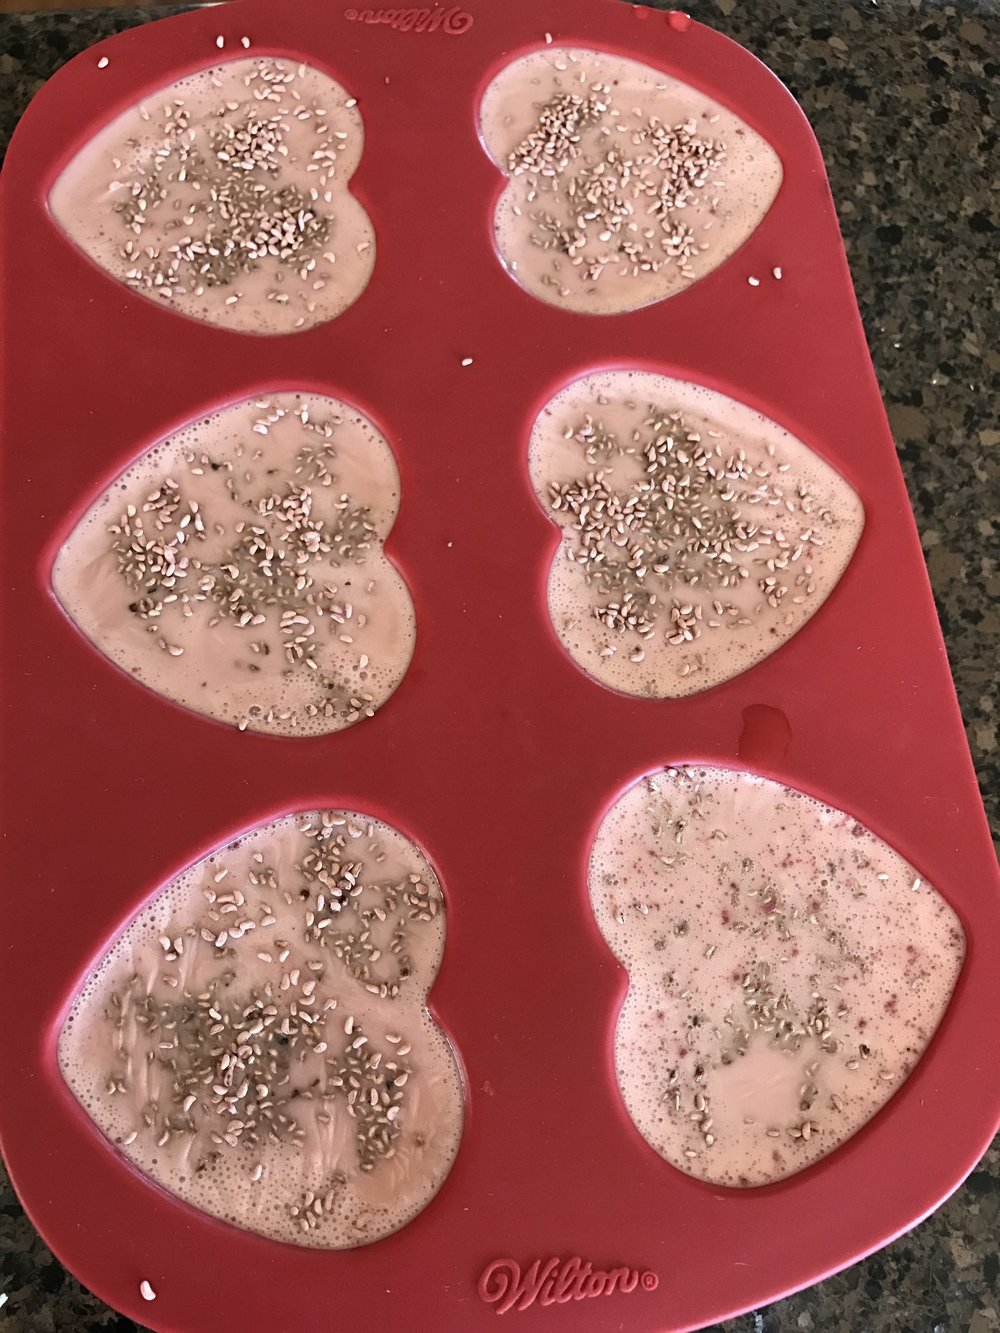 Here is some goats milk soap with French pink clay and raspberry seeds added.